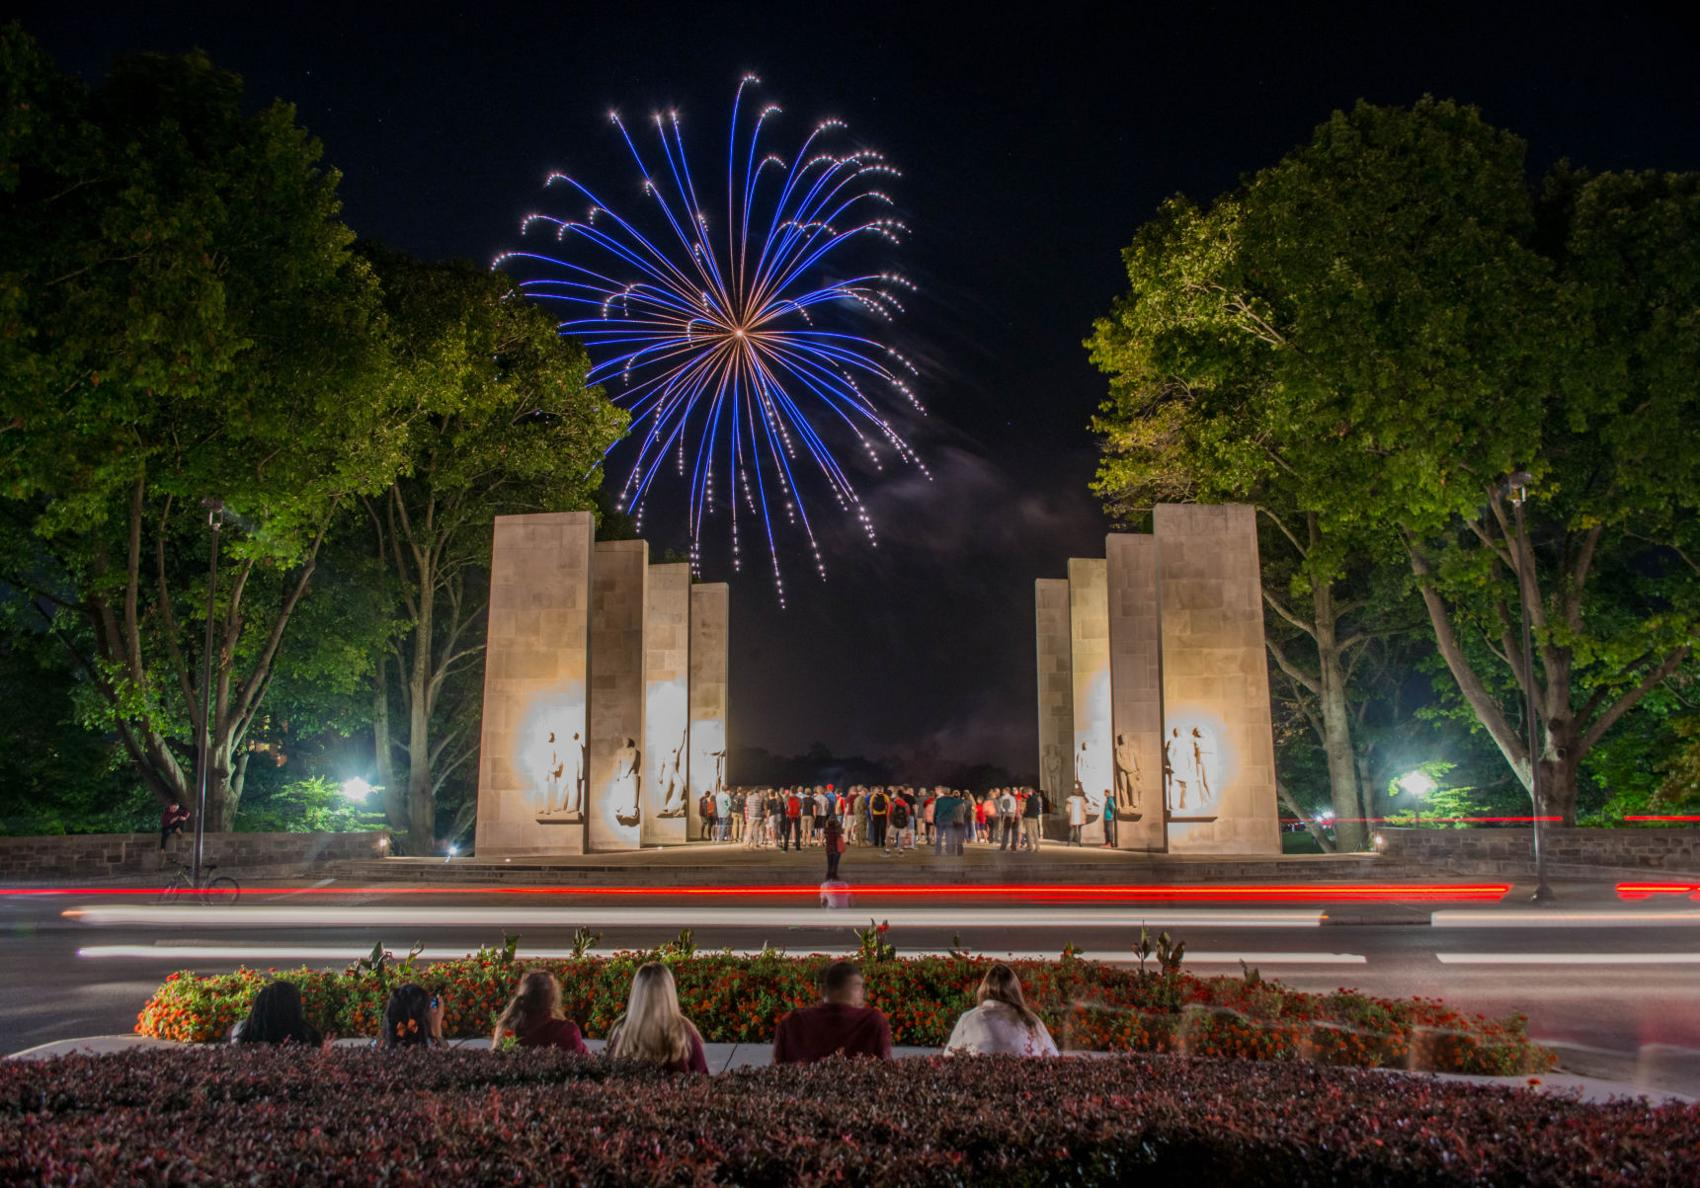 This image represents the Ring Reveal firework show as it is seen from spectators at the Chapel.